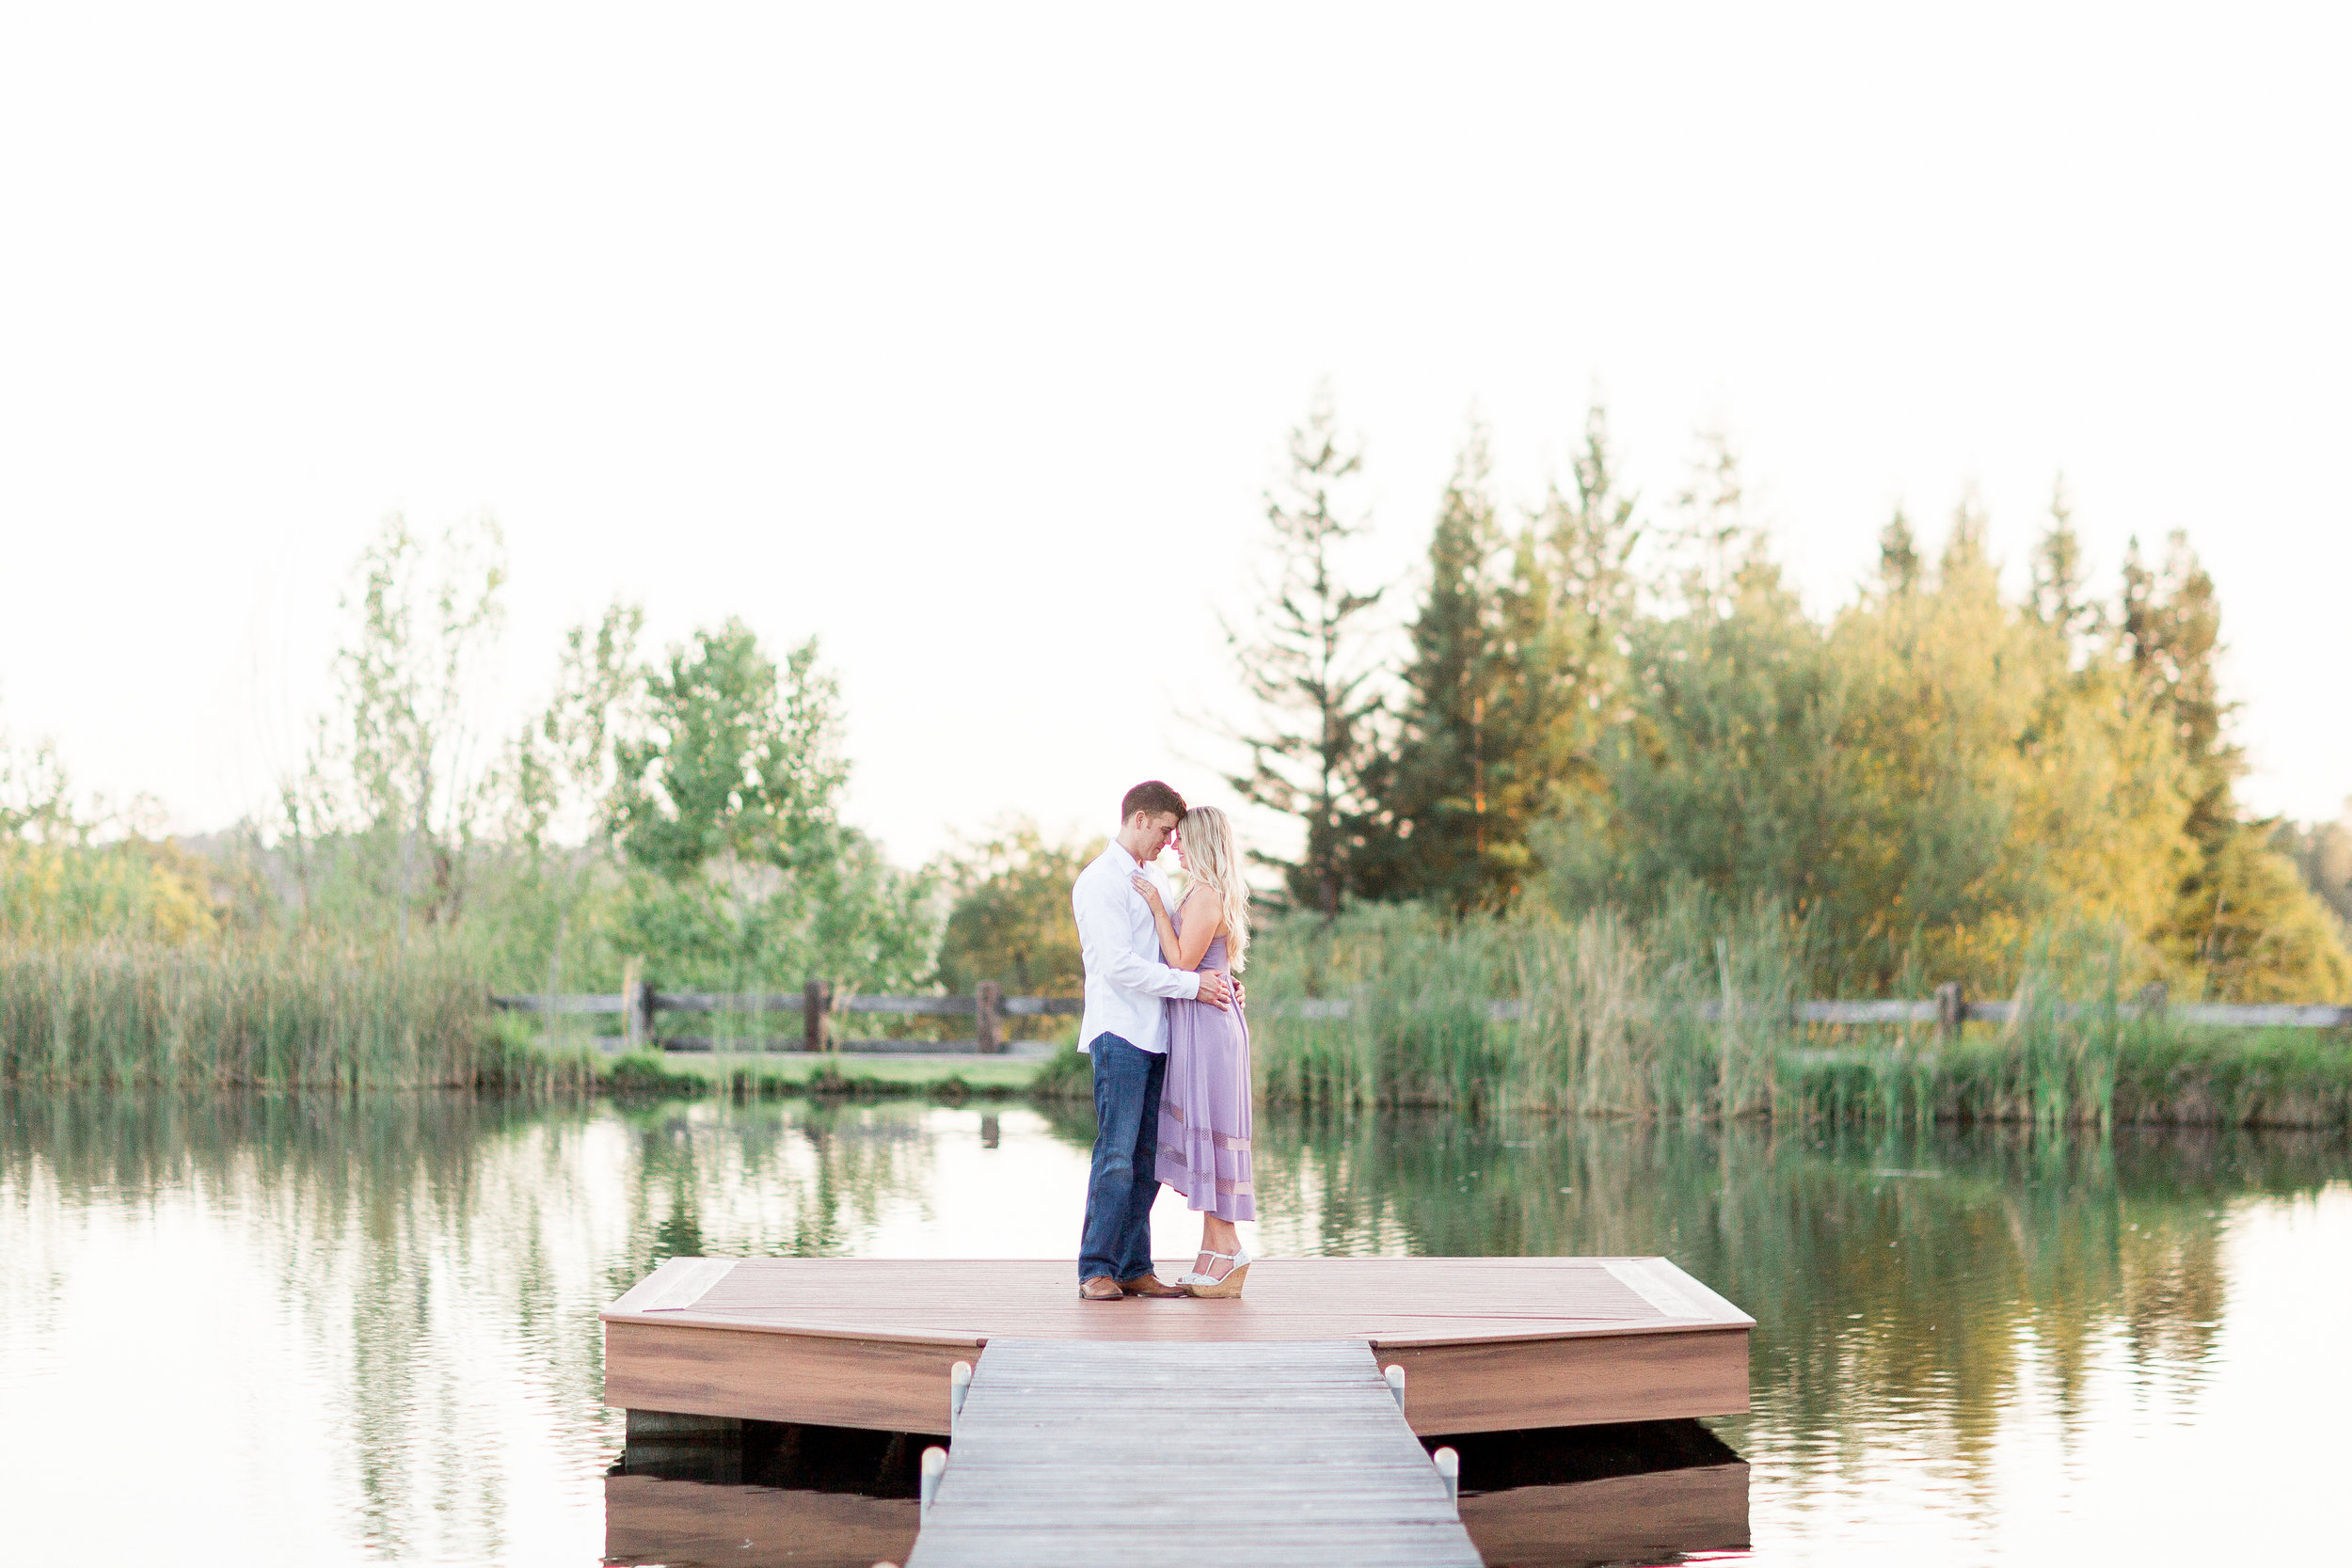 bywater-hollow-lavendar-farm-engagement-photography (113 of 155).jpg